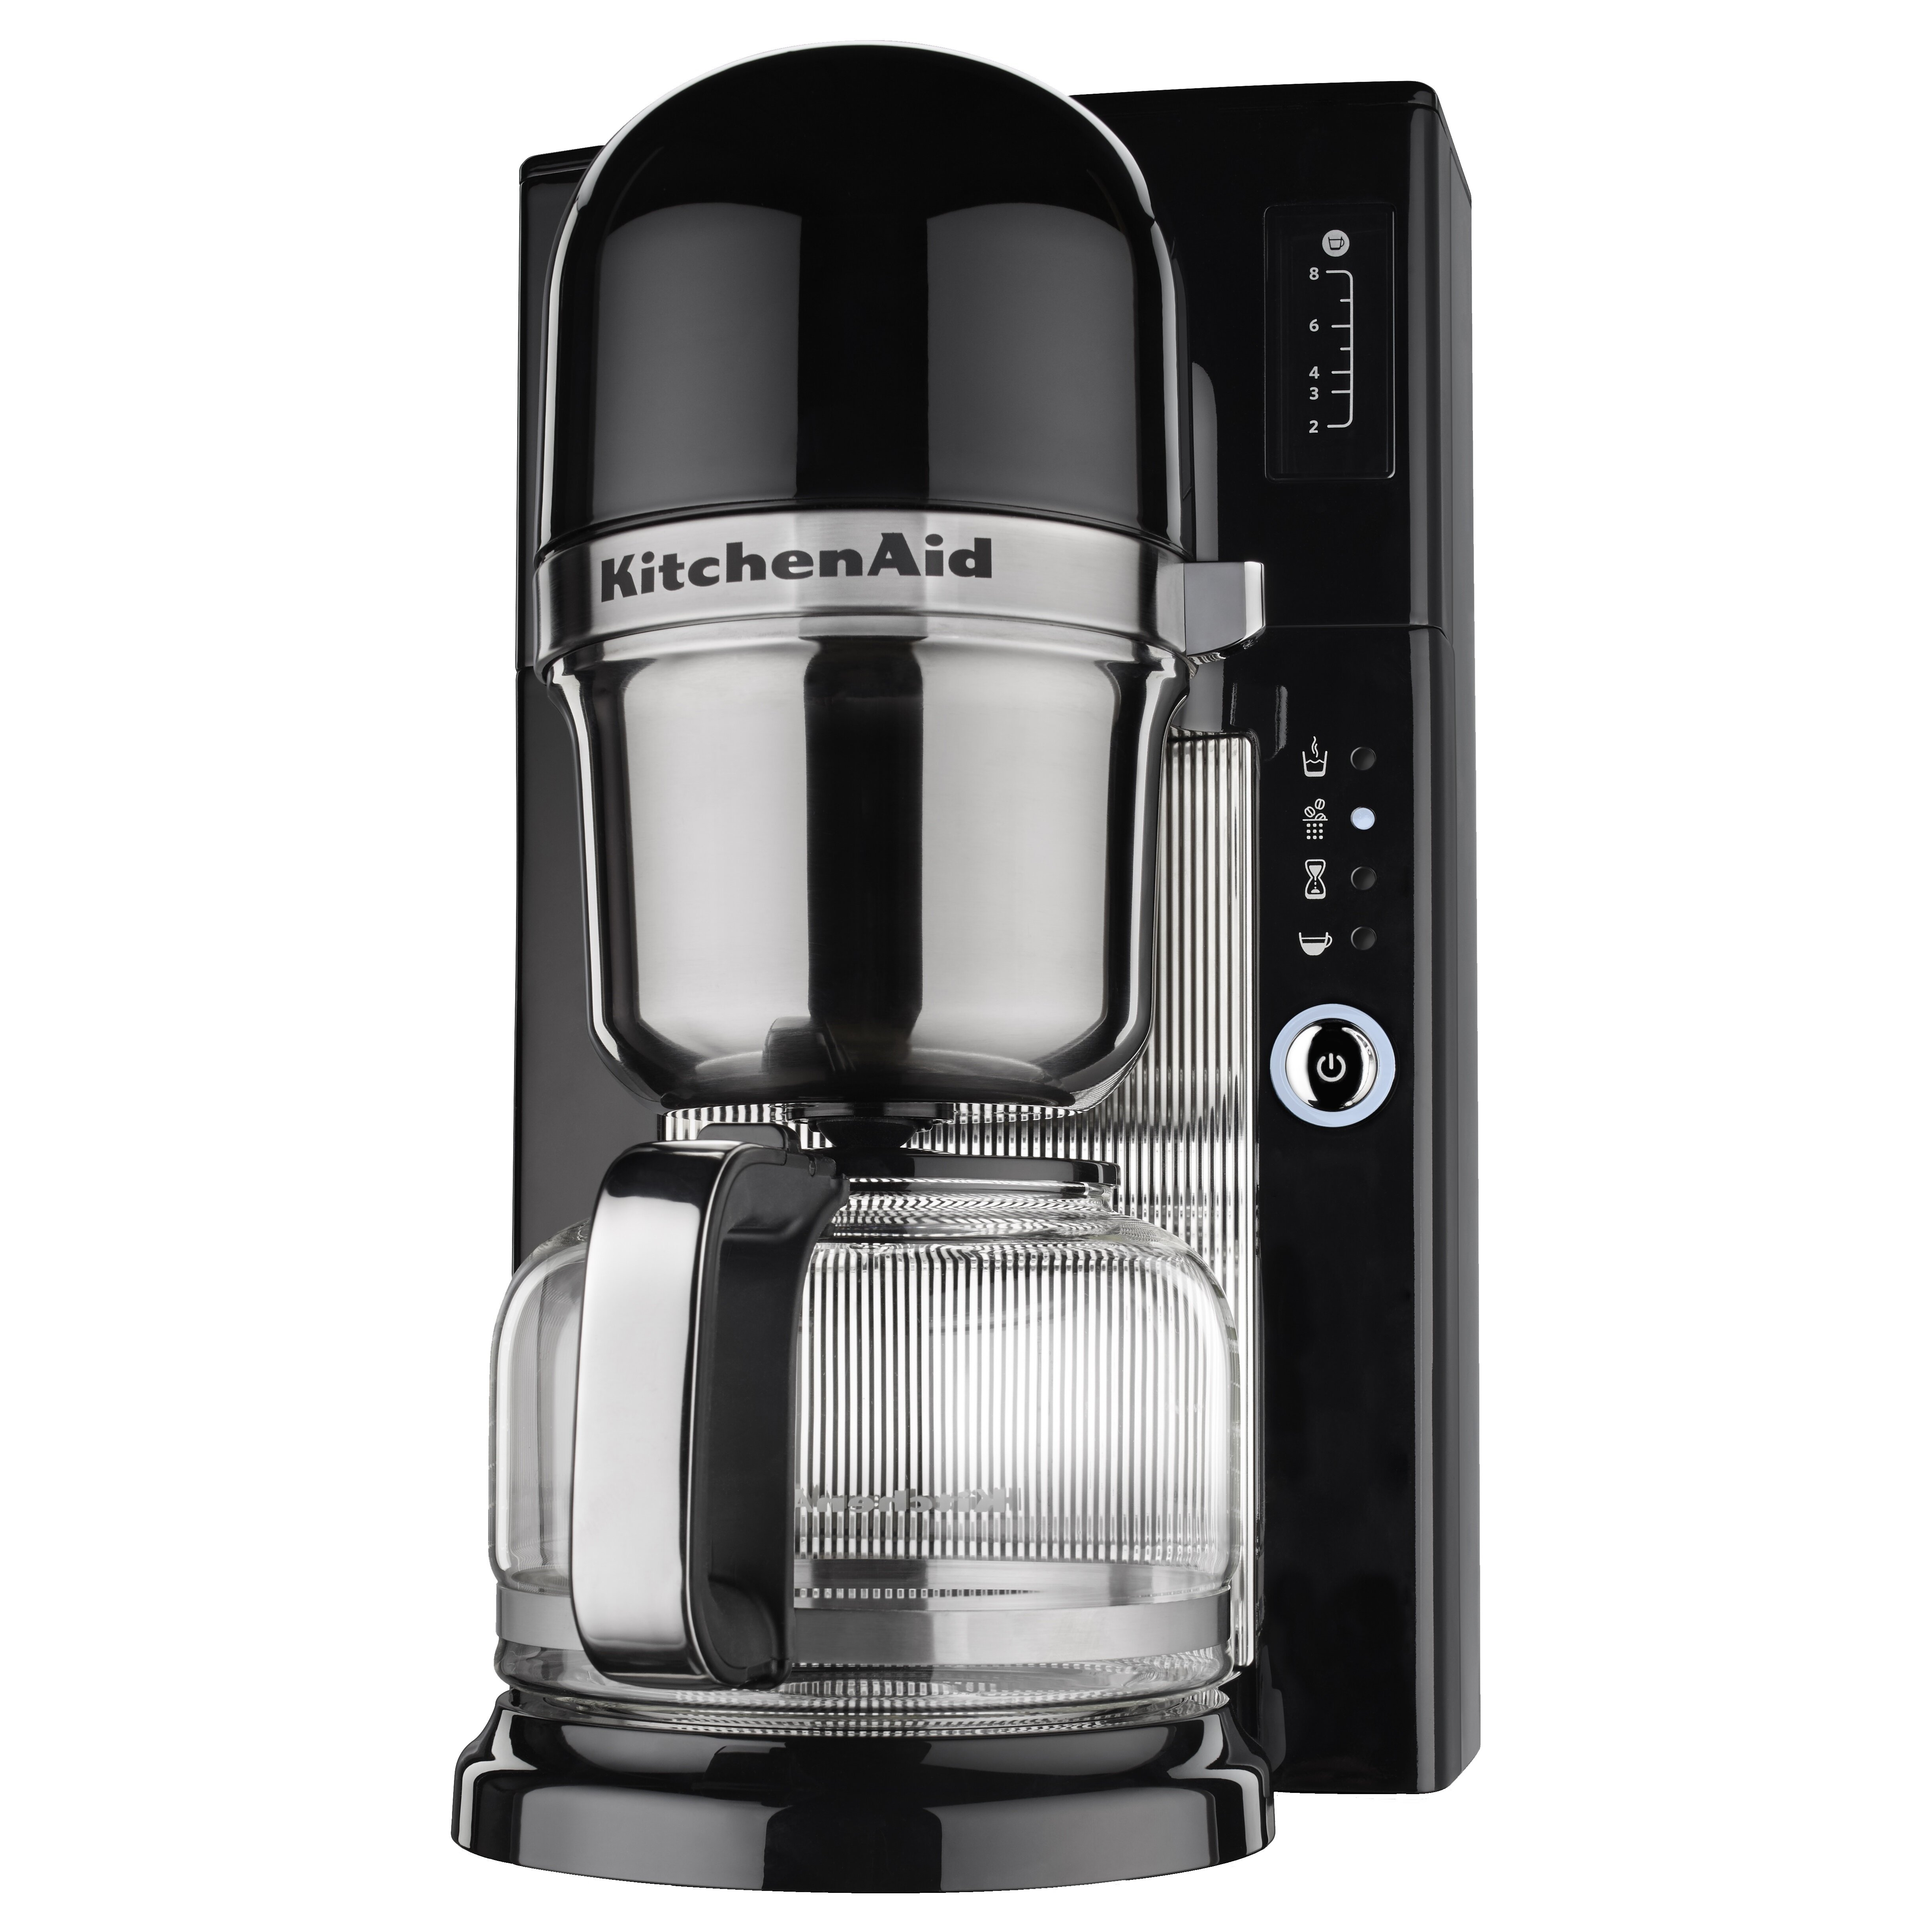 KitchenAid 8 Cup Pour Over Coffee Maker & Reviews Wayfair